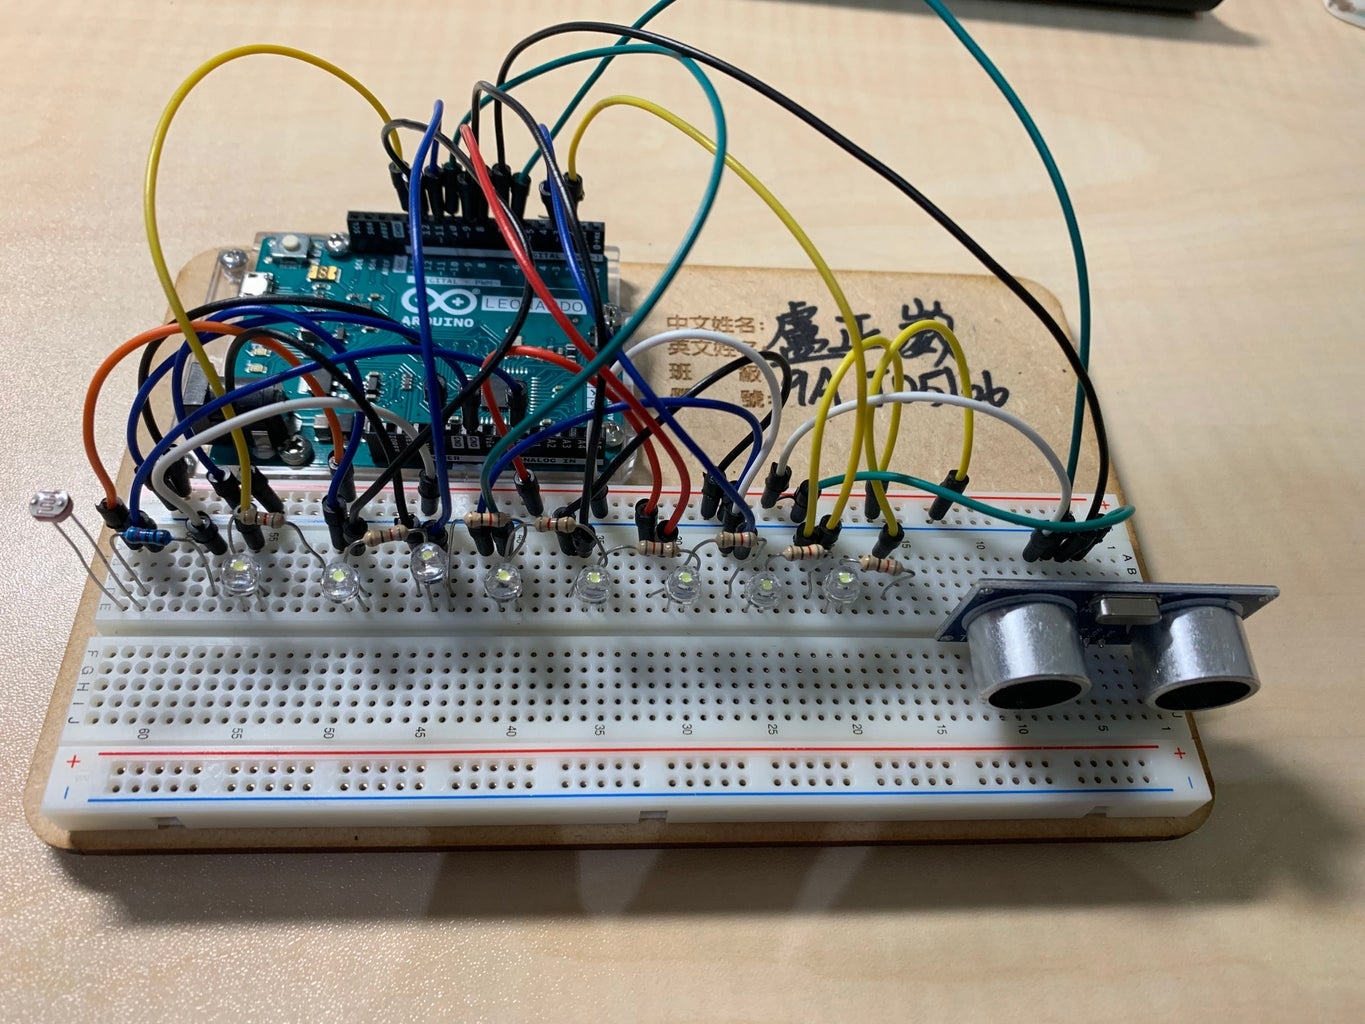 Assembling the Parts (onto the Breadboard)